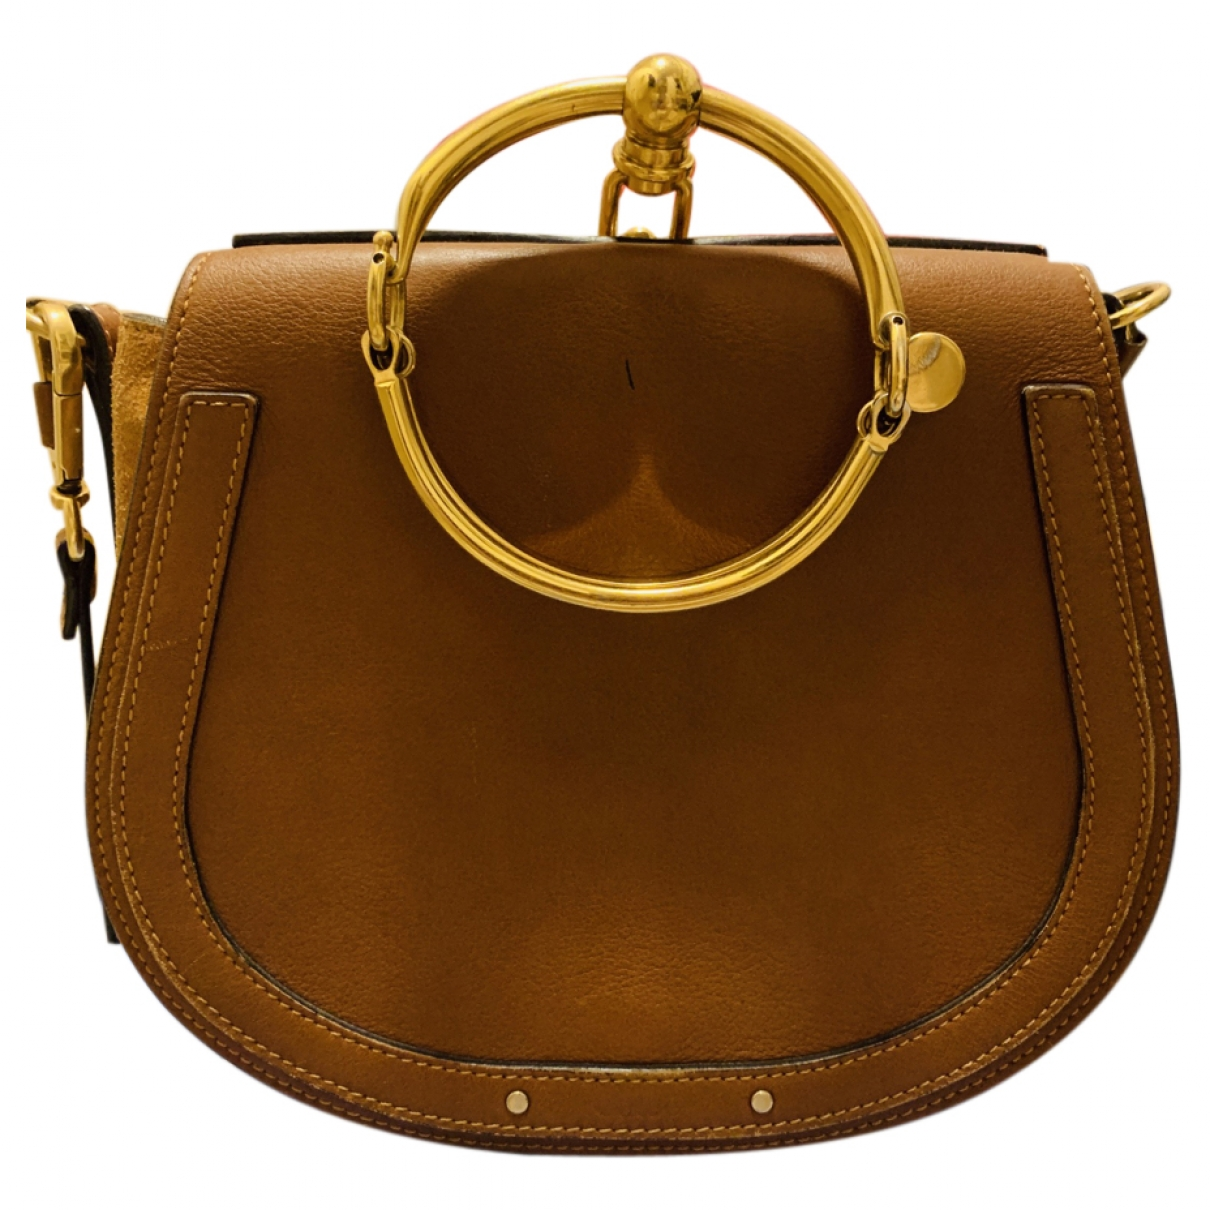 Chloé Bracelet Nile Brown Leather handbag for Women \N